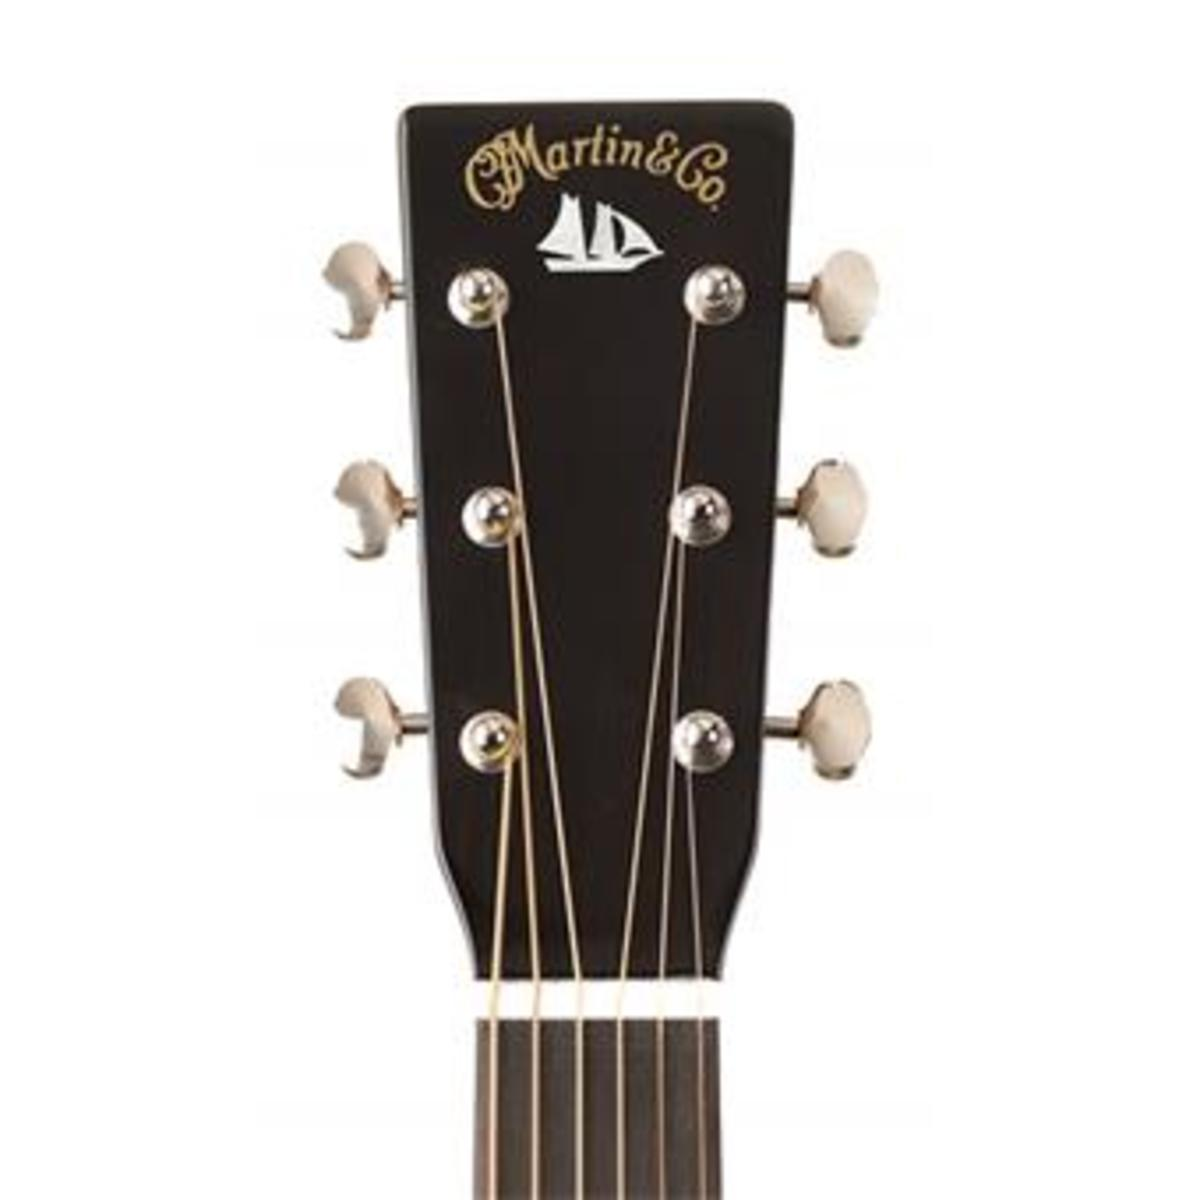 The Unique head stock of the Martin D-18 David Crosby